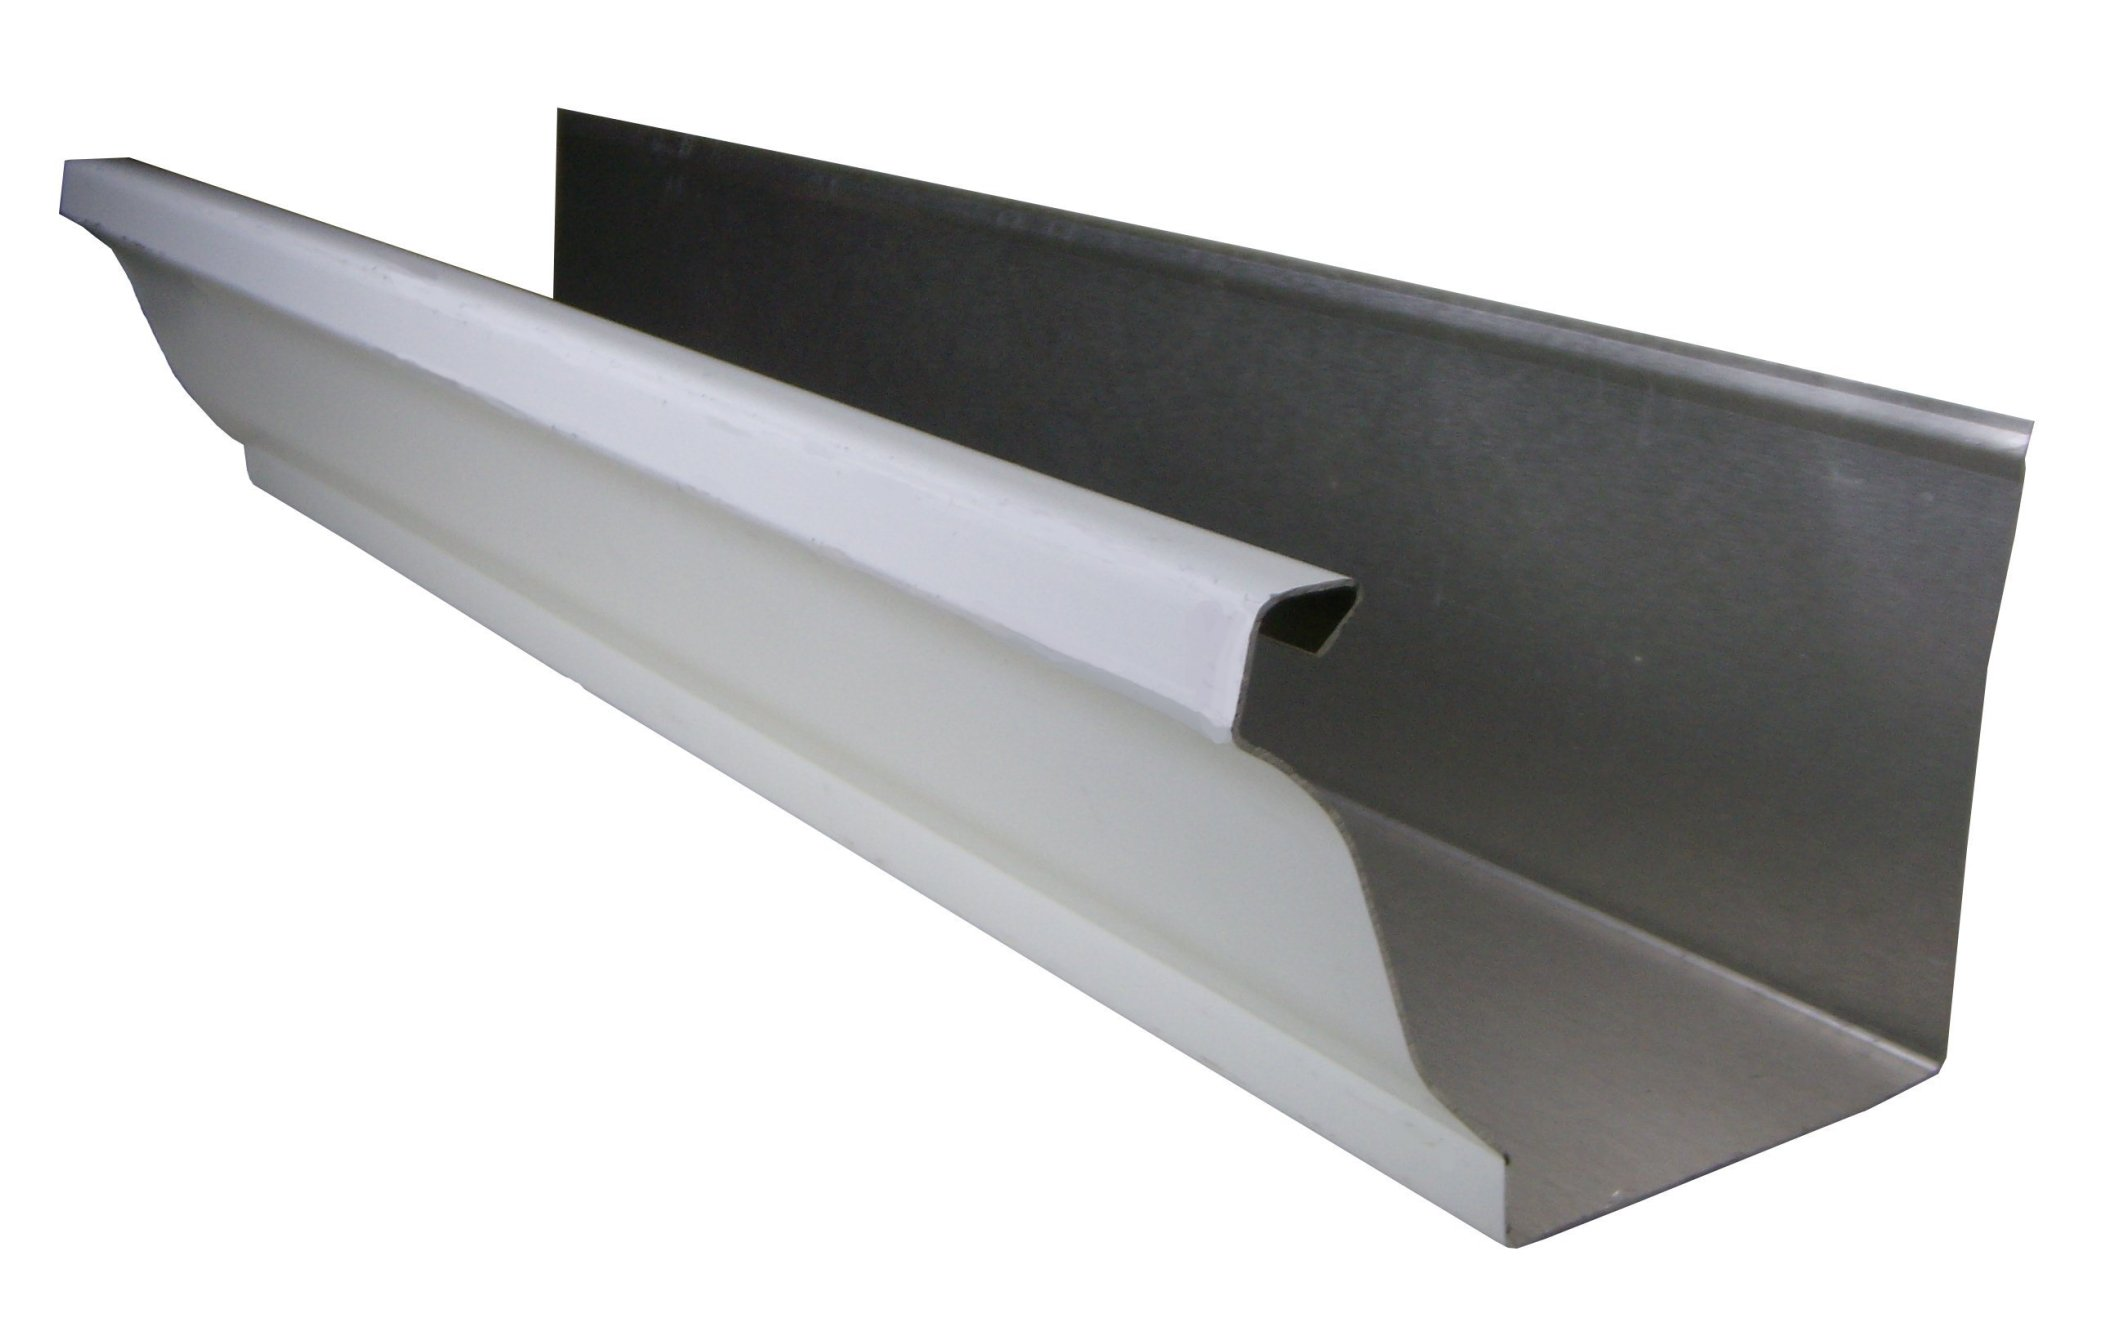 Gutters - Gutter Guards, Gutter Machines & Accessories